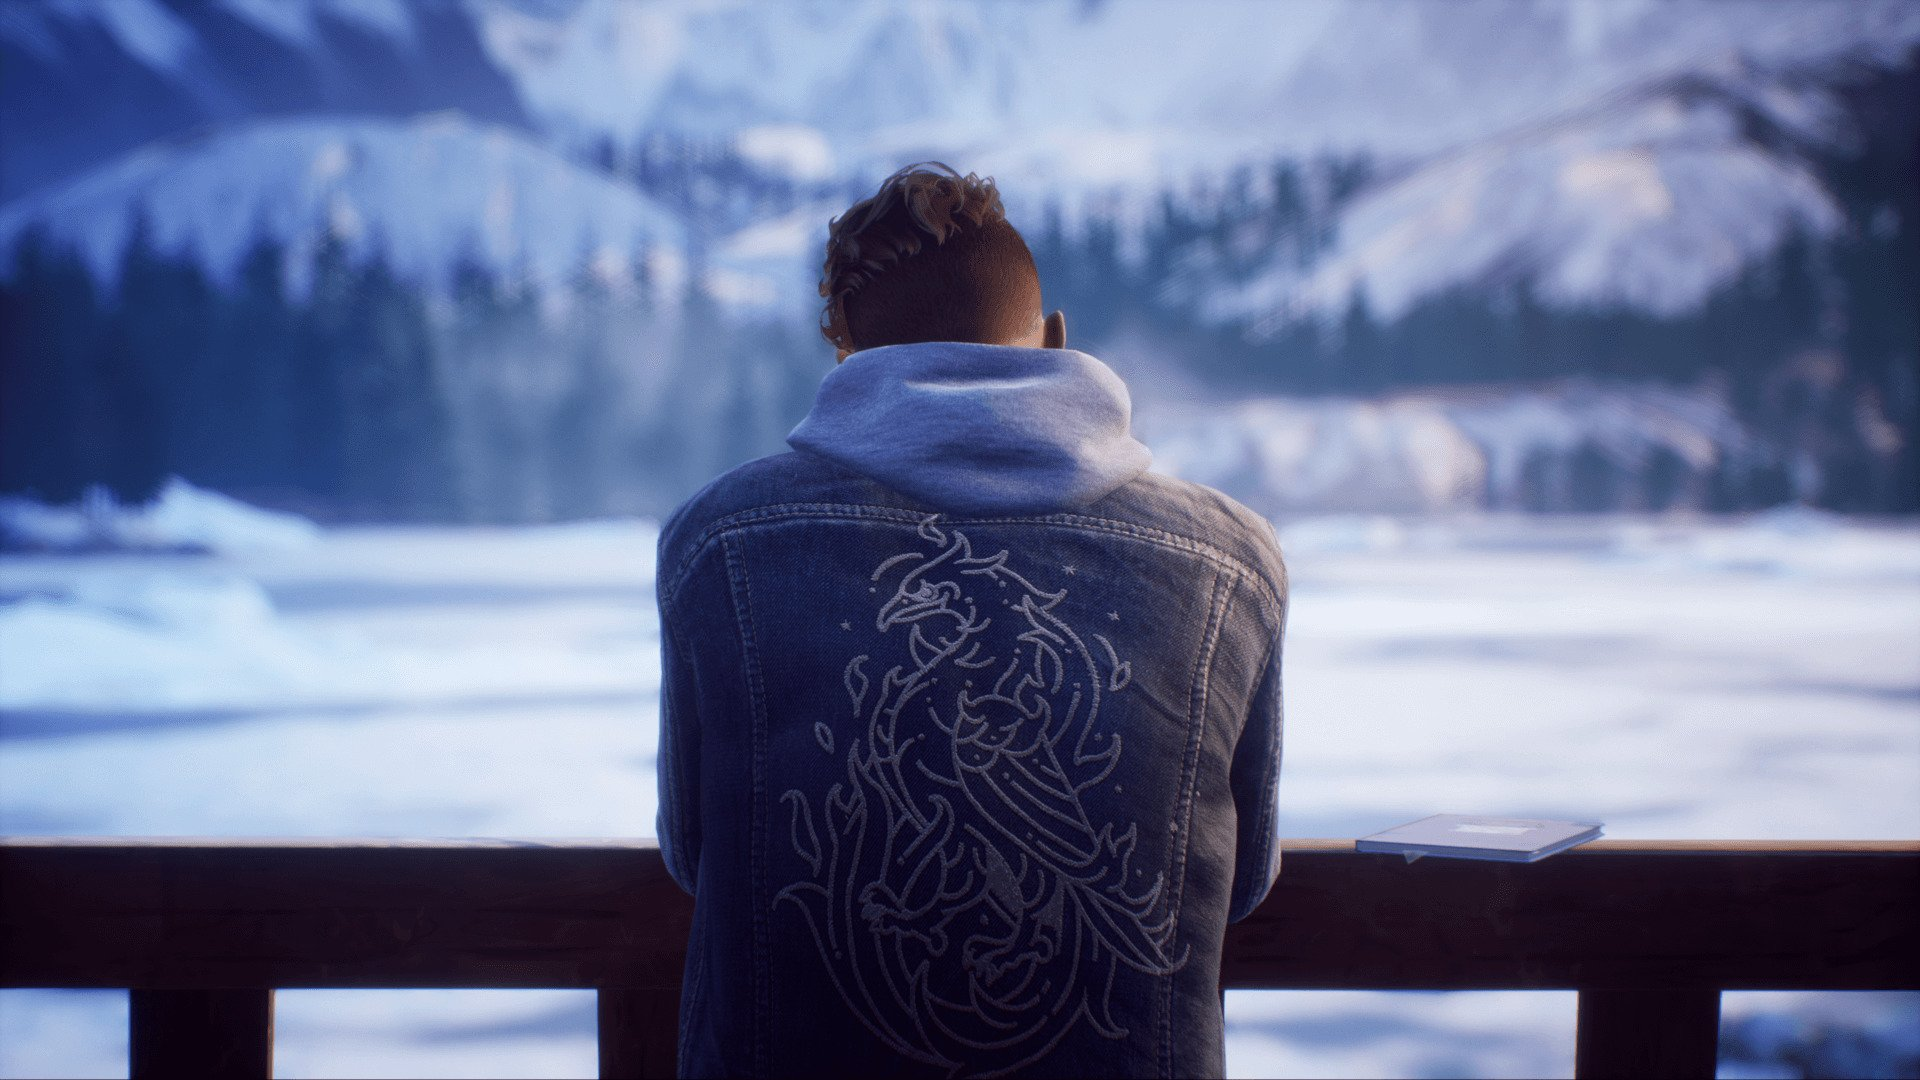 Life is Strange Studio Announces New Title, Tell Me Why